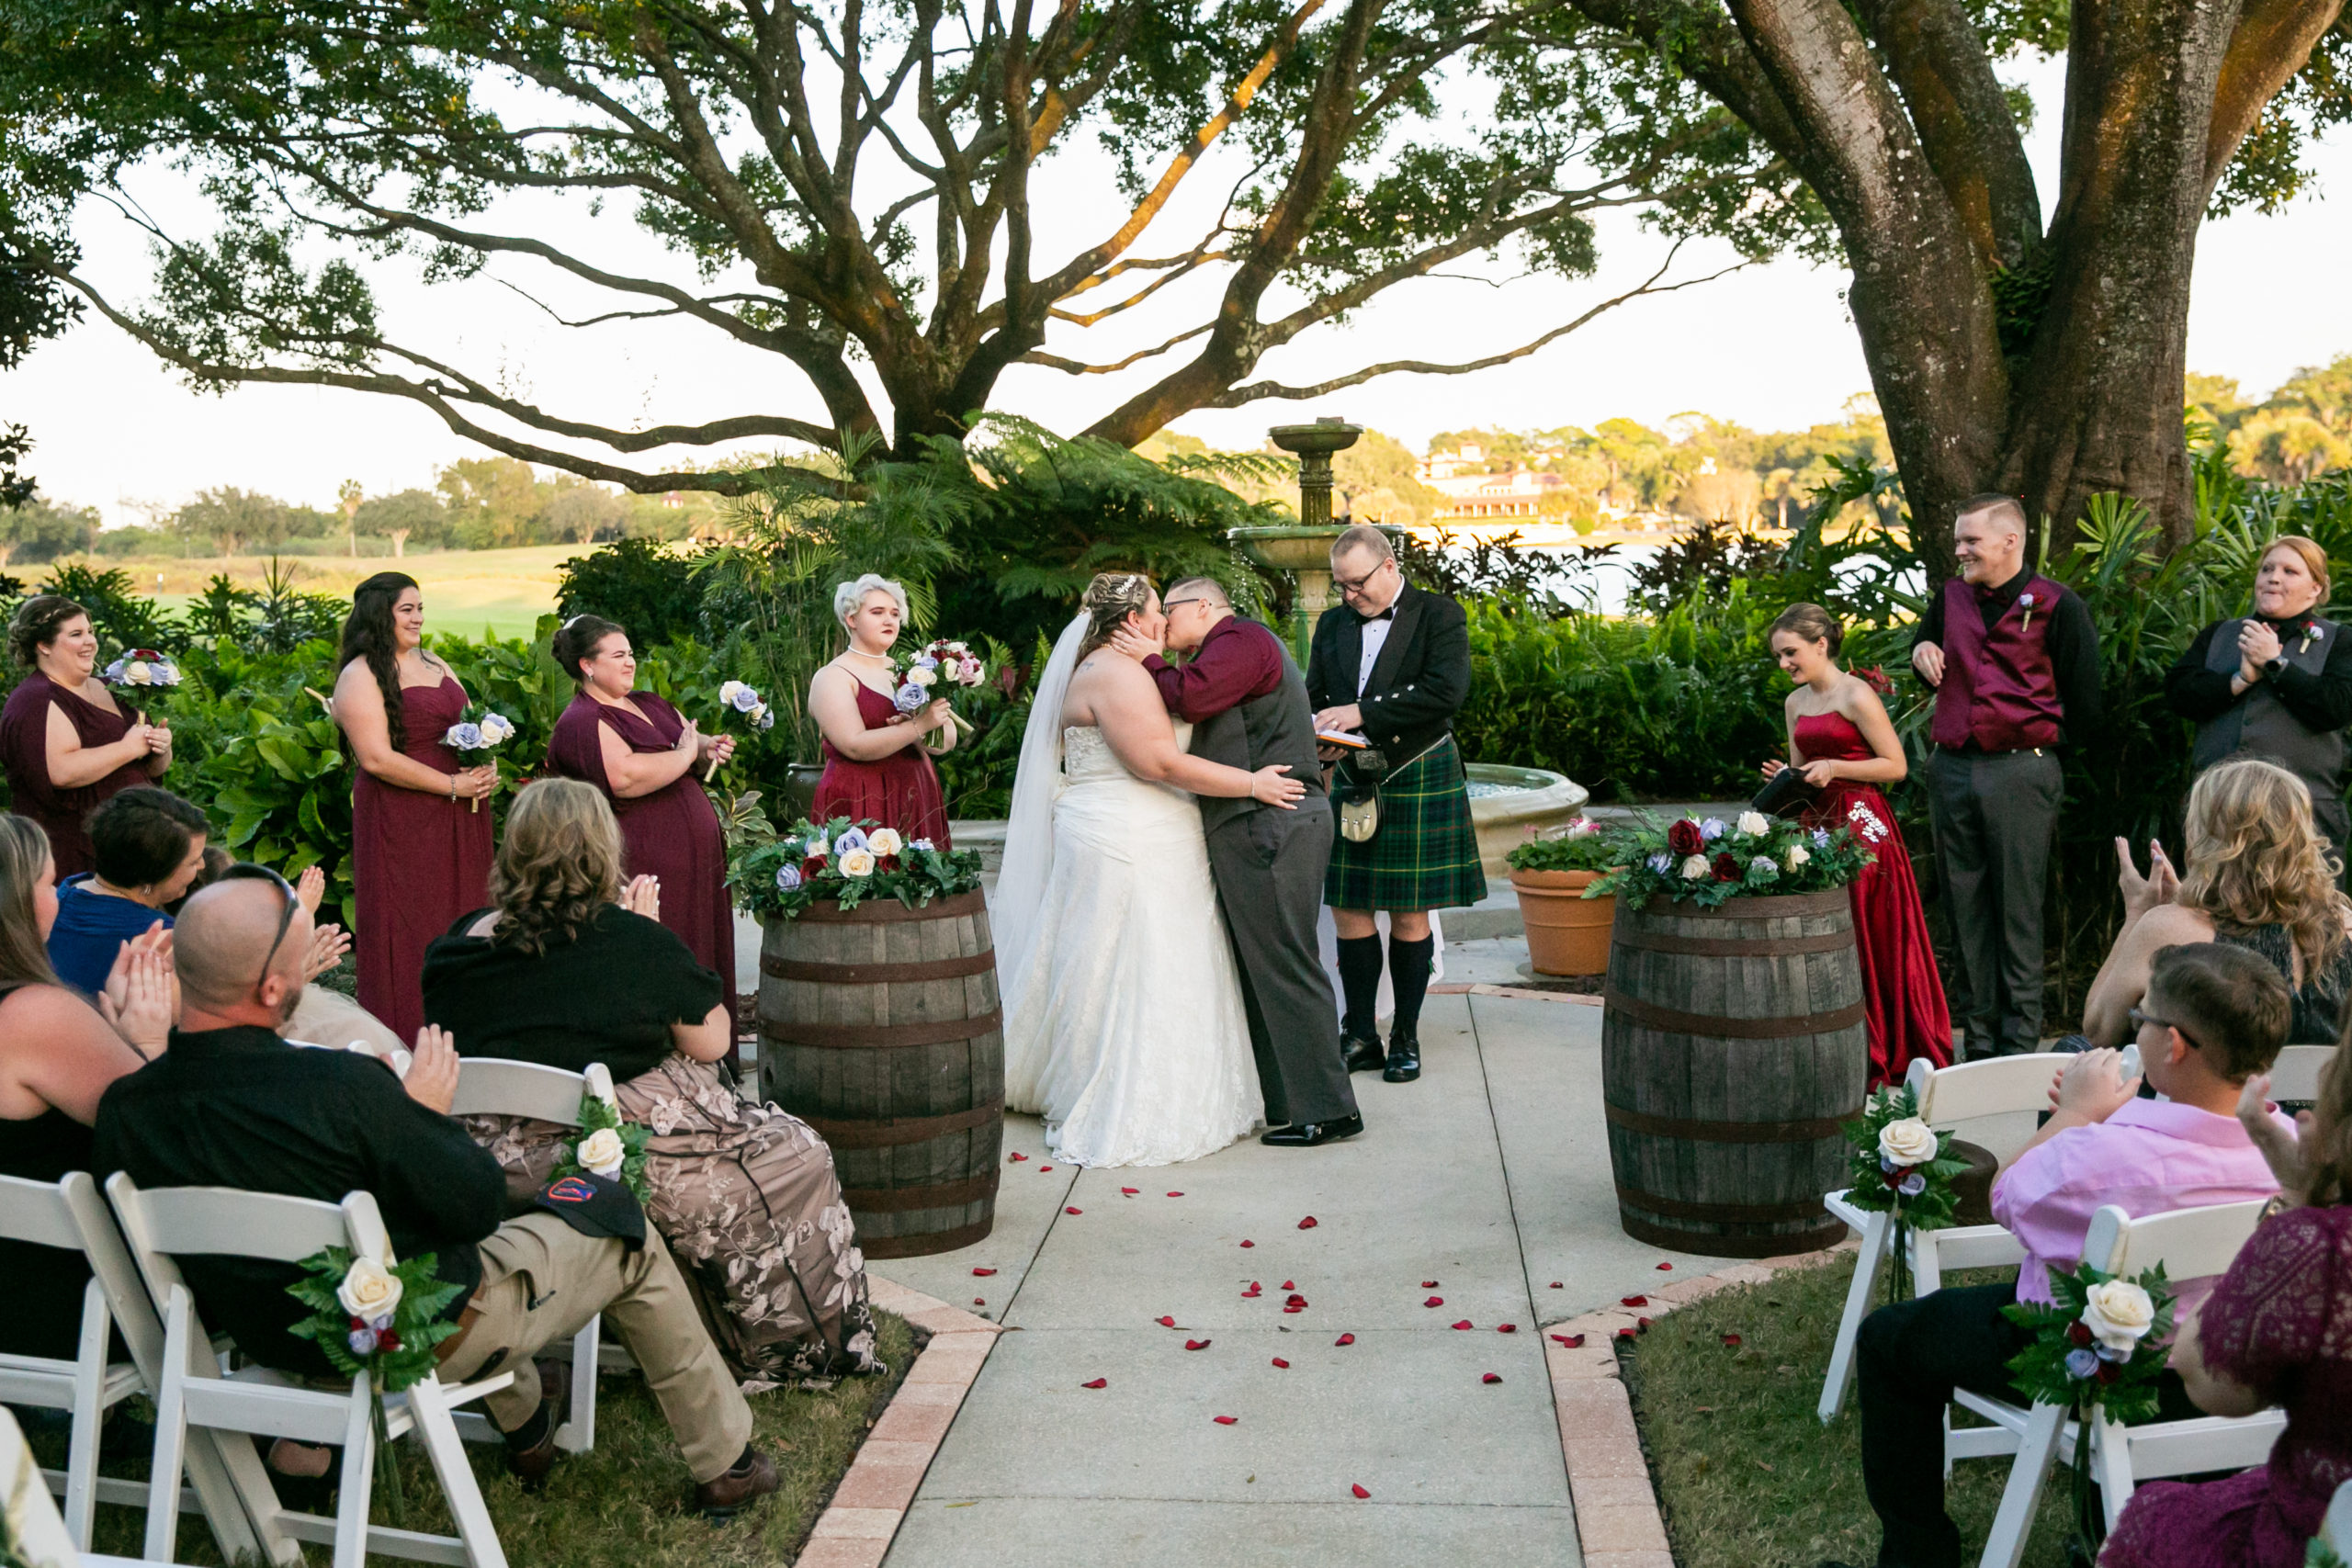 Brides kissing at the end of the vineyard inspired ceremony